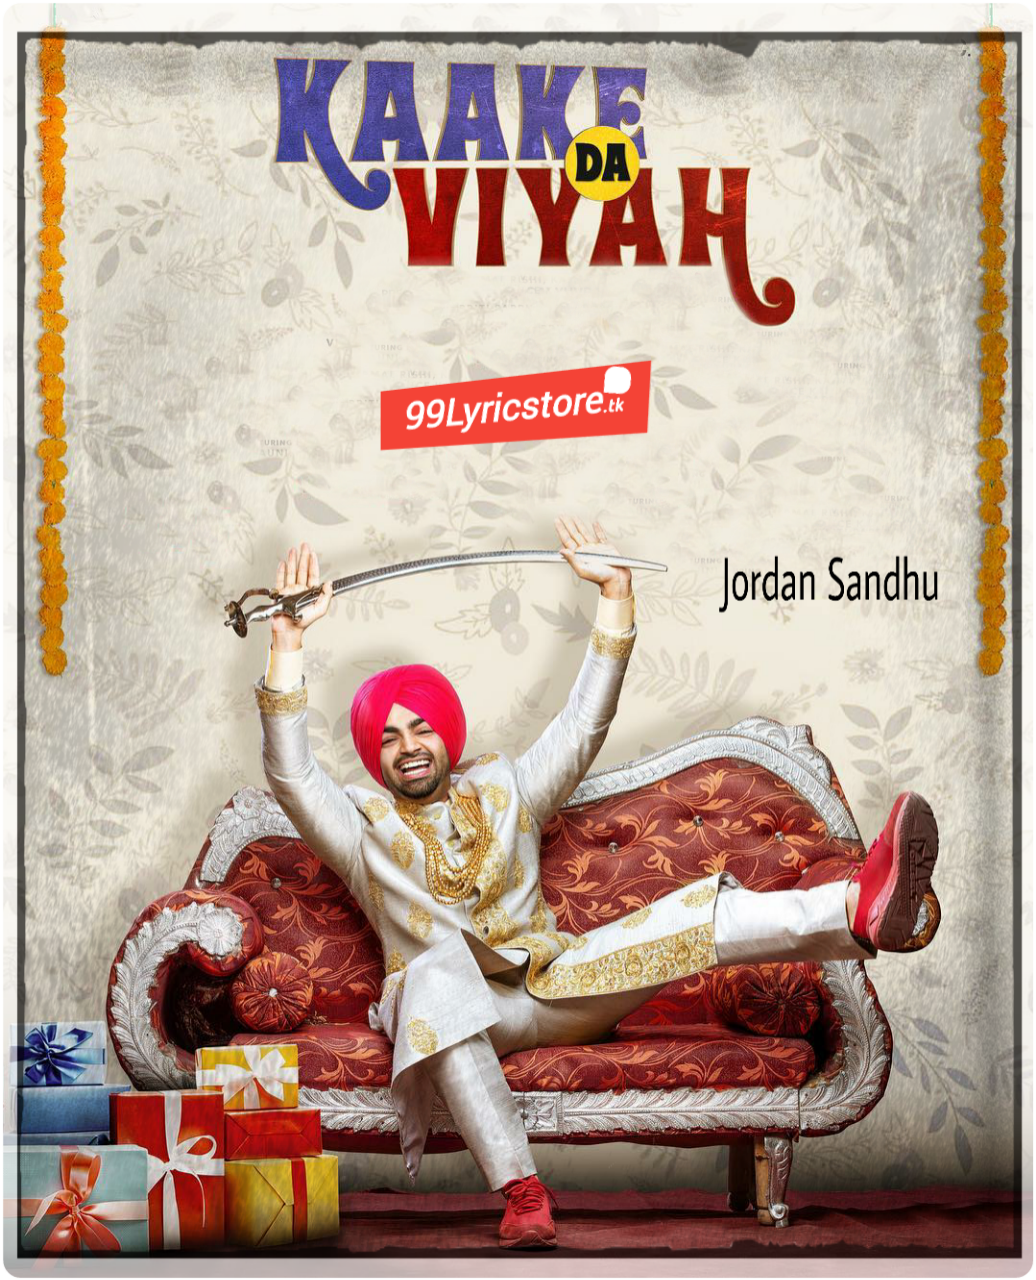 Kaake Da Viyah (Title Track) Lyrics – Jordan Sandhu | Prabh Grewal | Bunty Bains, Punjabi Song Kaake da viyah Lyrics, Latest Punjabi Song Kake da viyah song lyrics, Jordan Sandhu Song Kaake da viyah Lyrics, Bunty Brains Song Lyrics, Kaake da viyah title song Lyrics, Kaake da viyah title track images, Kaake da viyah Punjabi Song images